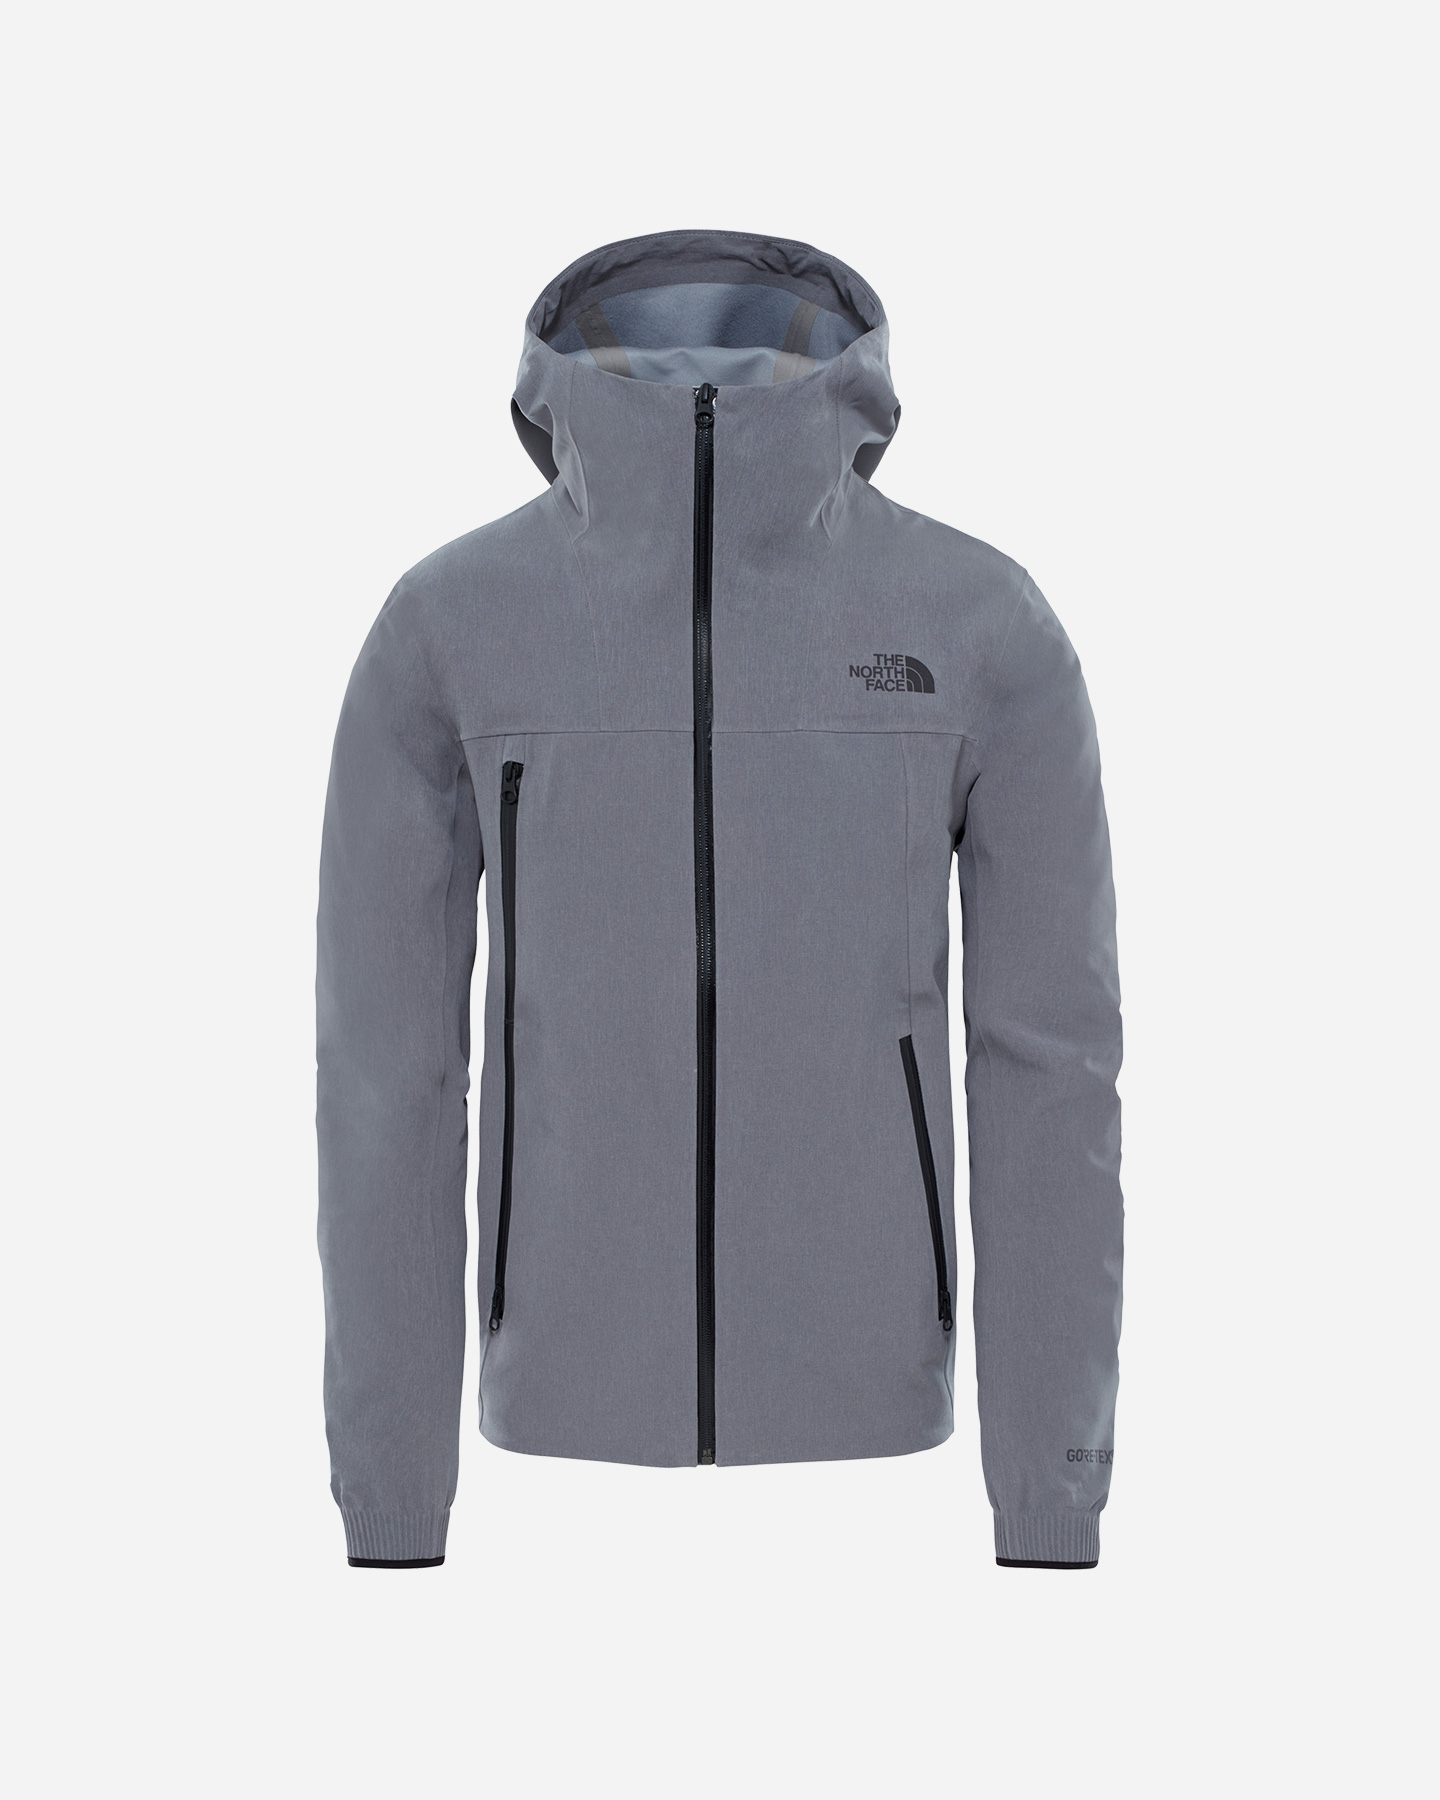 north face giacca goretex